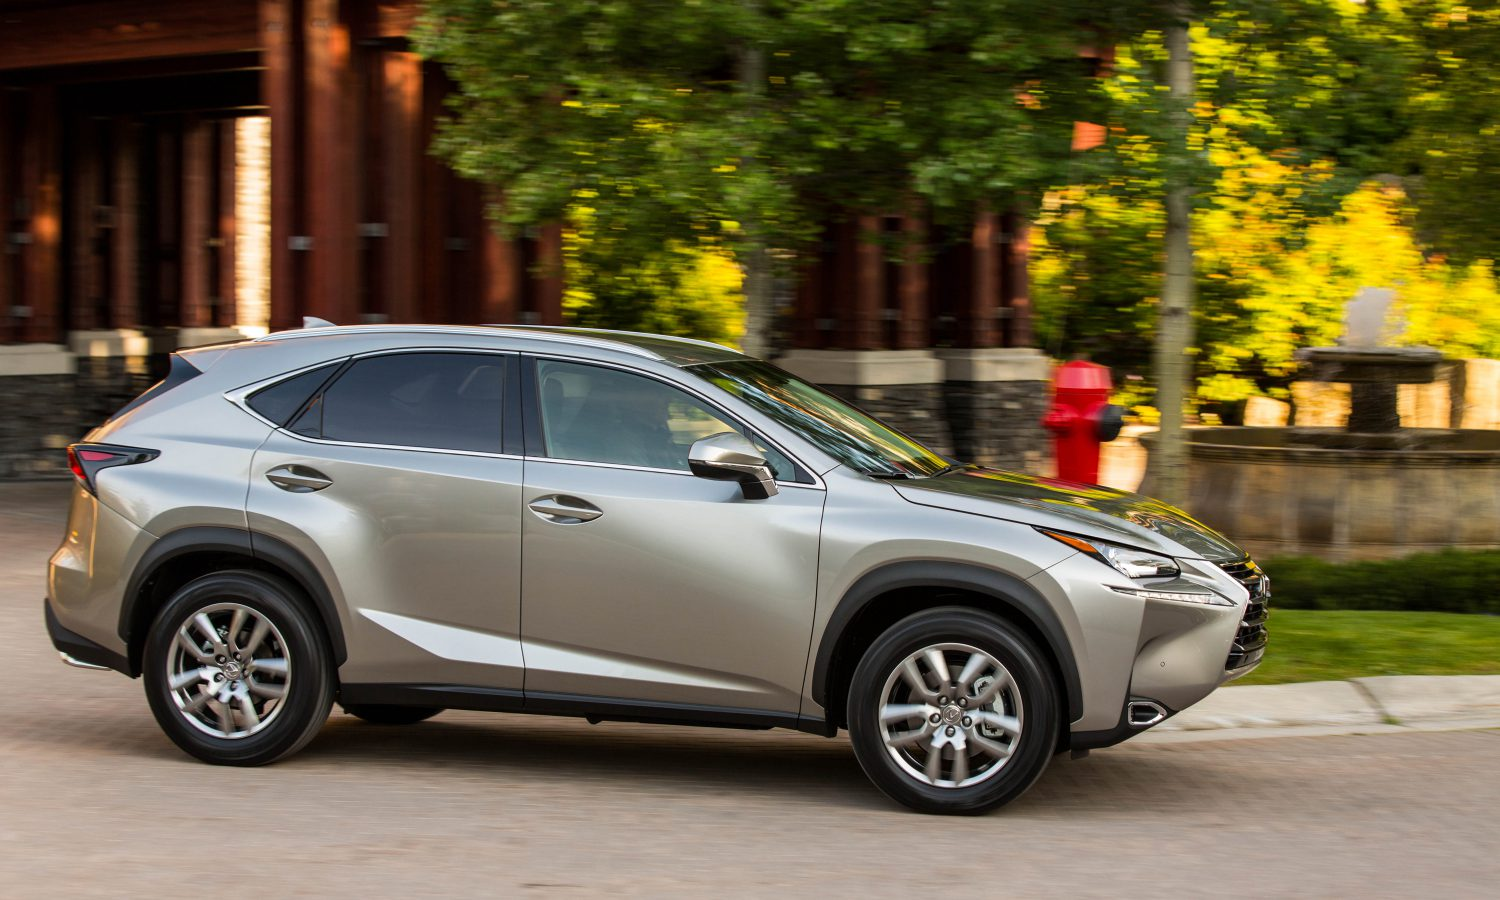 2016 NX 200t Compact Luxury Utility Gets a Boost From Turbocharged Gas Engine